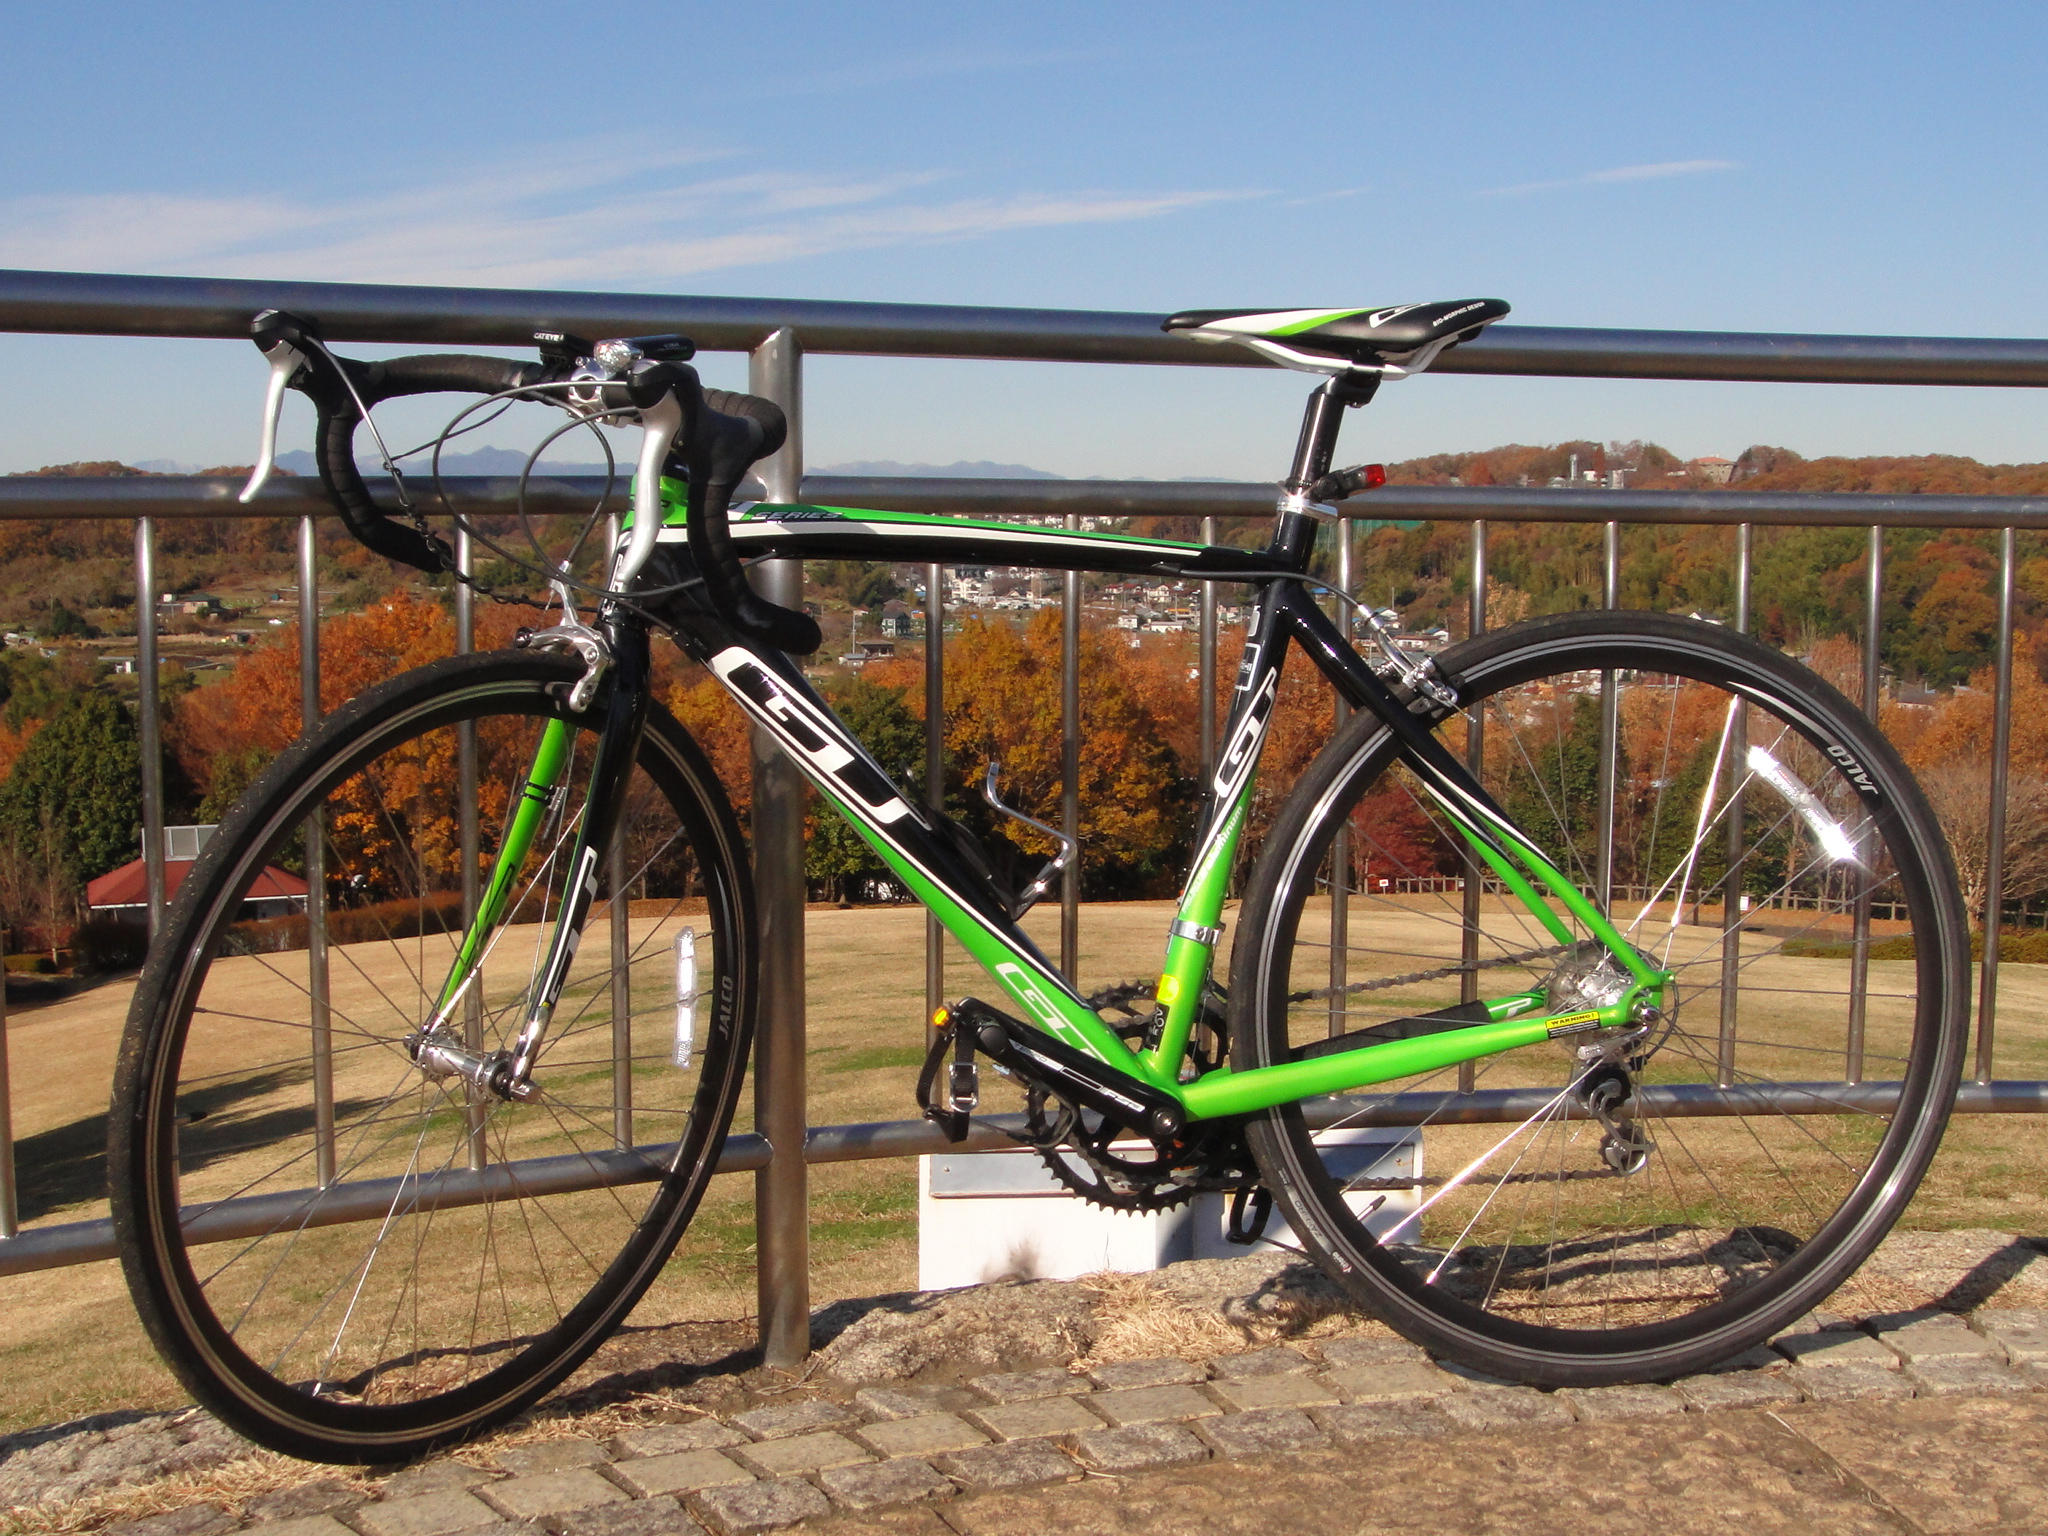 file gt bicycles gtr series 4 2011 lime and black jpg wikimedia commons. Black Bedroom Furniture Sets. Home Design Ideas